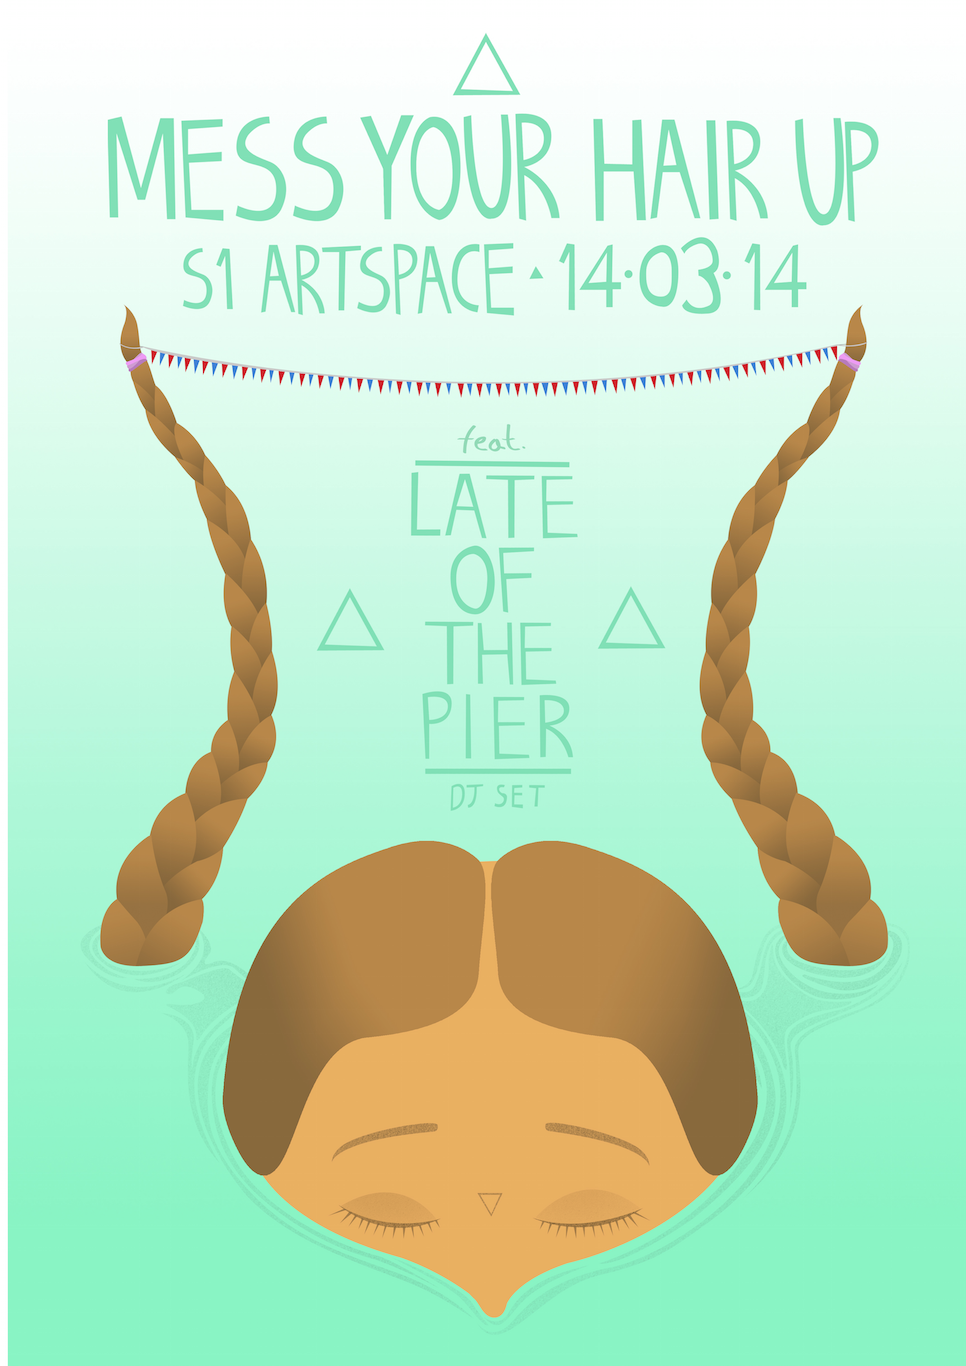 LATE OF THE PIER are quitting their four-year hiatus for a one-off DJ set in Sheffield, this Friday 14th March at S1 Artspace as part of our new club night 'Mess Your Hair Up'. Hopefully this means they're back for good, eh? Mess Your Hair Up #2 S1 Artspace, Sheffield Friday 14th March 10pm - 4am £3.50 adv / £5 otd Solange / Metronomy / Outkast / Thee Oh Sees / Haim / Fleetwood Mac / Talking Heads / Jamie XX / Pulp / Parquet Courts / Little Dragon / Azealia Banks / LCD Soundsystem / Ty Segall / White Denim / Mac DeMarco / Tame Impala / Disclosure / Grizzly Bear / The Cure / Danny Brown / Kevin Lyttle / Django Django / Tom Vek / Drake / Kindness / Purity Ring / The Smiths / Blood Orange / Santigold / Hot Chip / Friendly Fires http://fb.com/messyourhairupclub